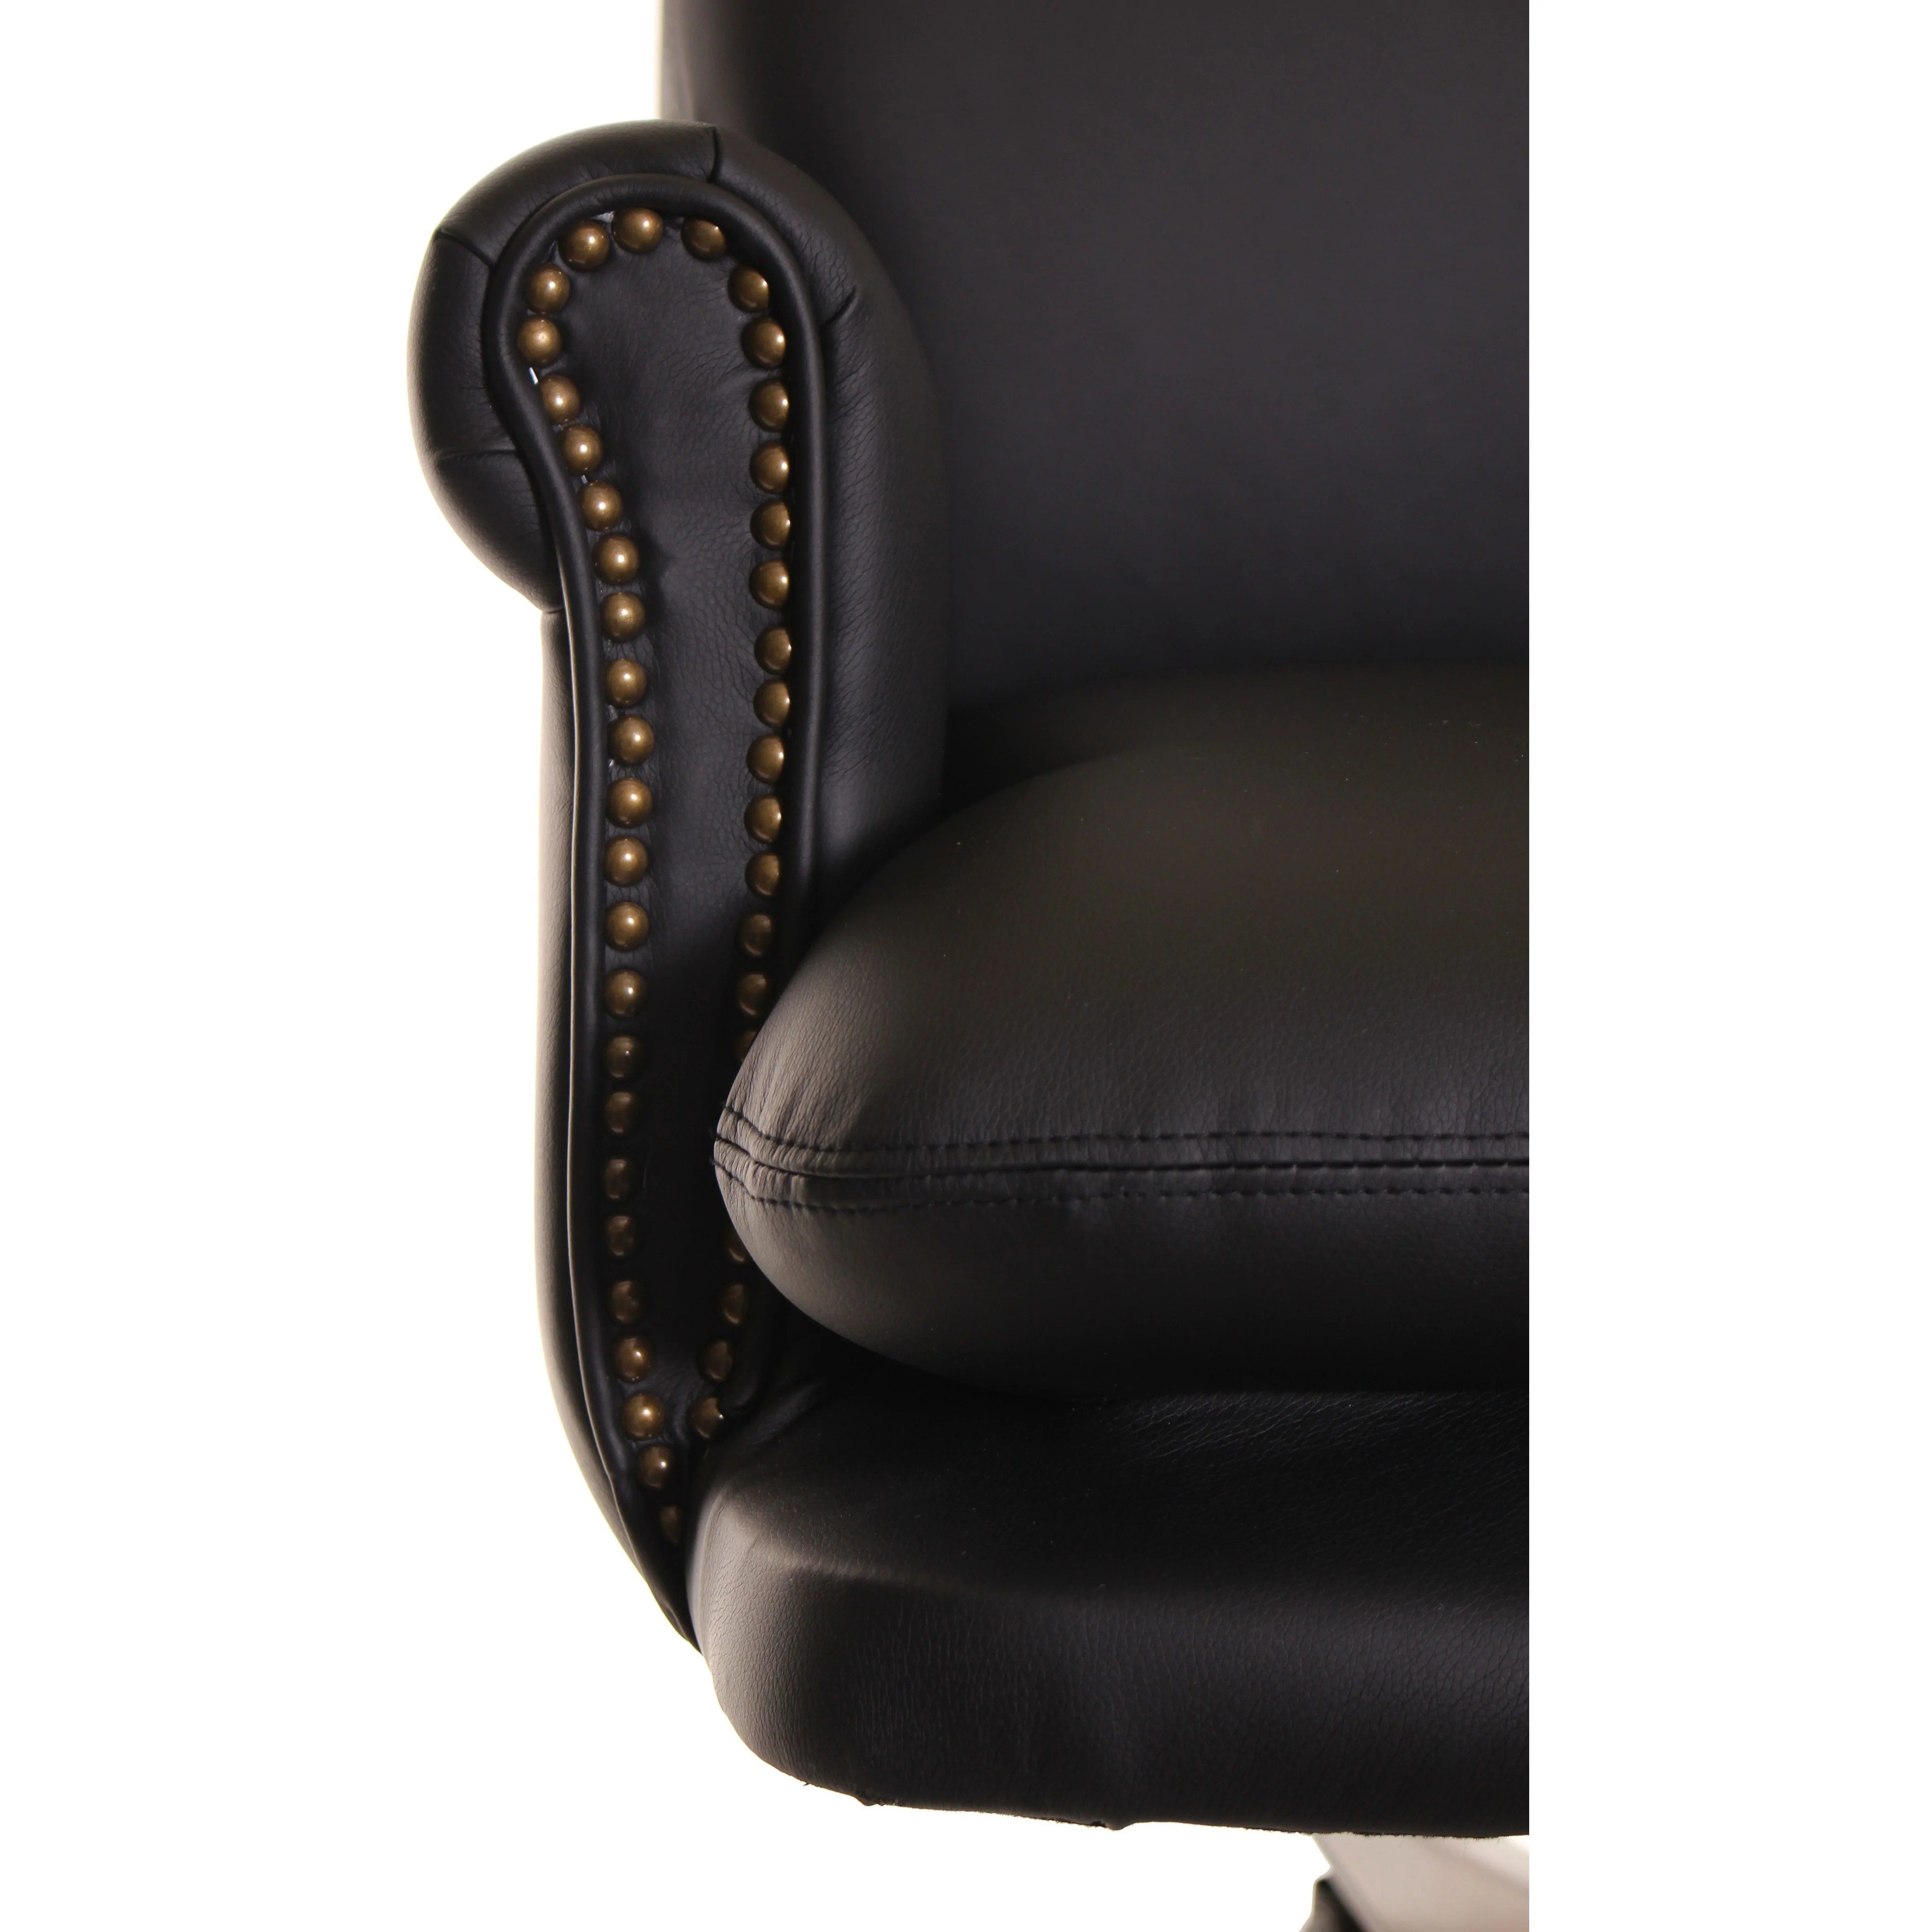 ergonomic chair back angle rent tables and chairs traditional executive leather office rake